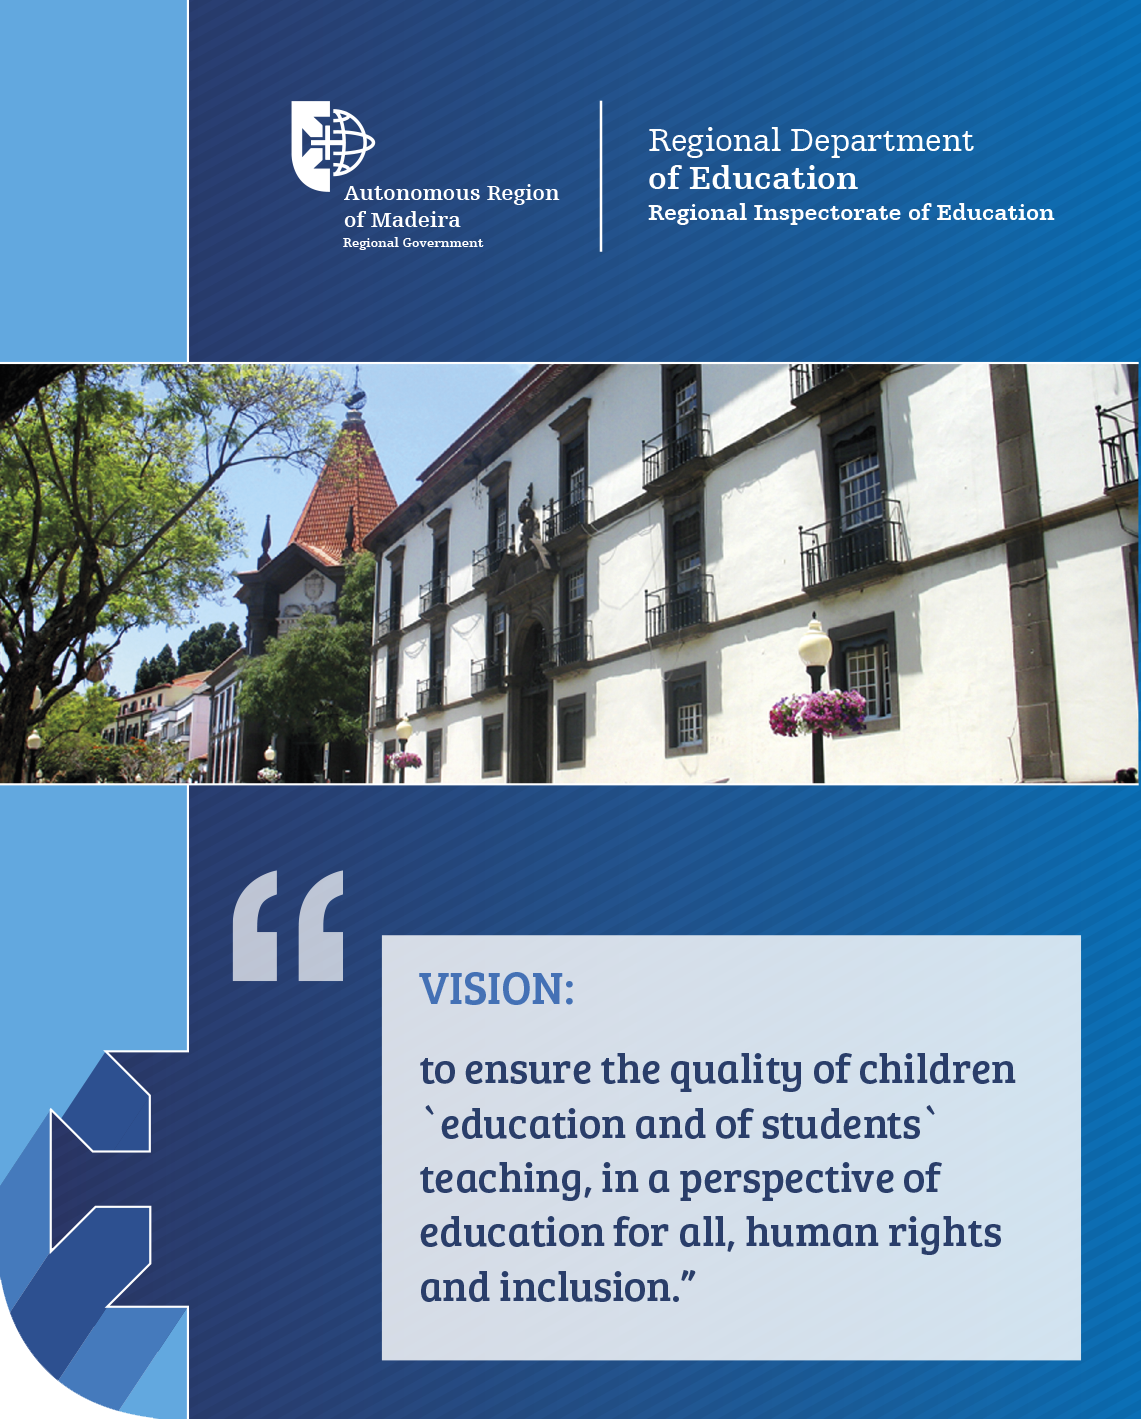 Vision of the Regional Inspectorate of Education